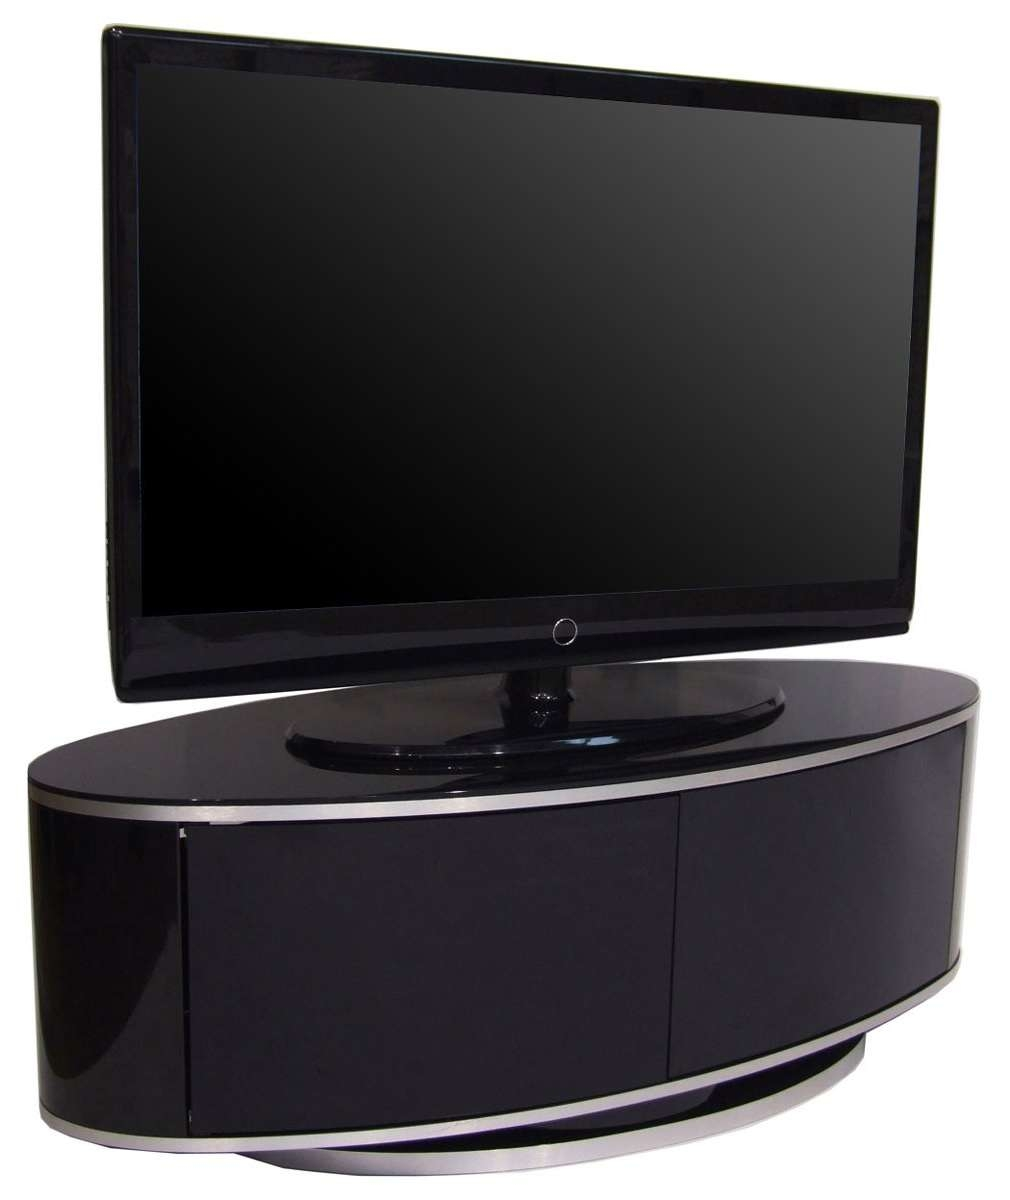 Luna High Gloss Black Oval Tv Cabinet Intended For Oval Tv Stands (View 2 of 20)